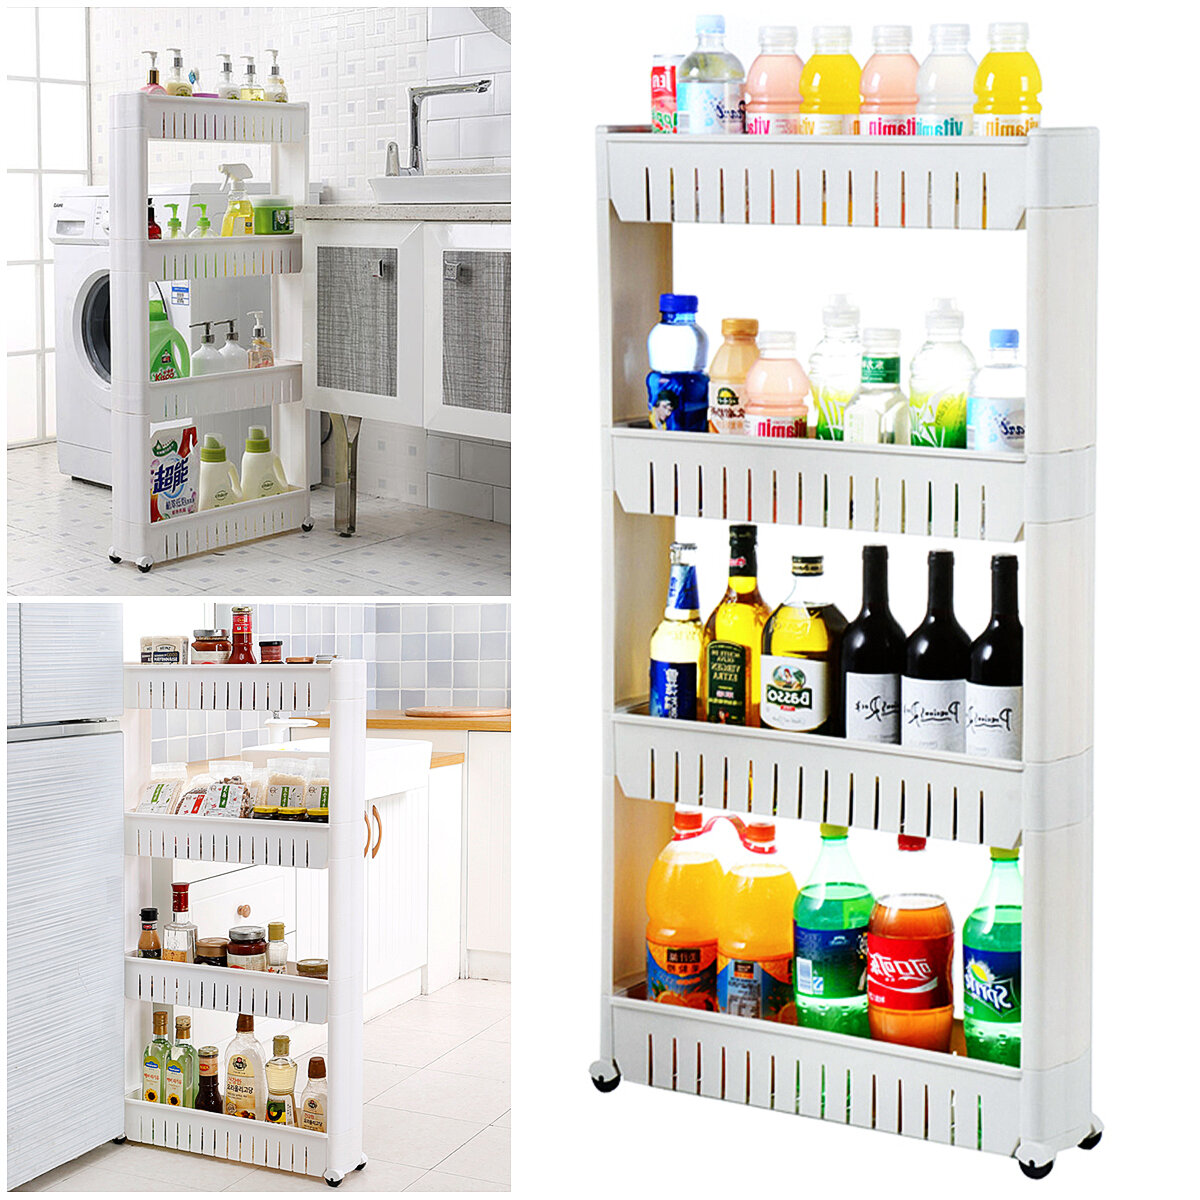 3/4 Tier Rolling Kitchen Trolley Storage Organizer Storage Tower Spice Rack Slide Out Storage Laundry room L